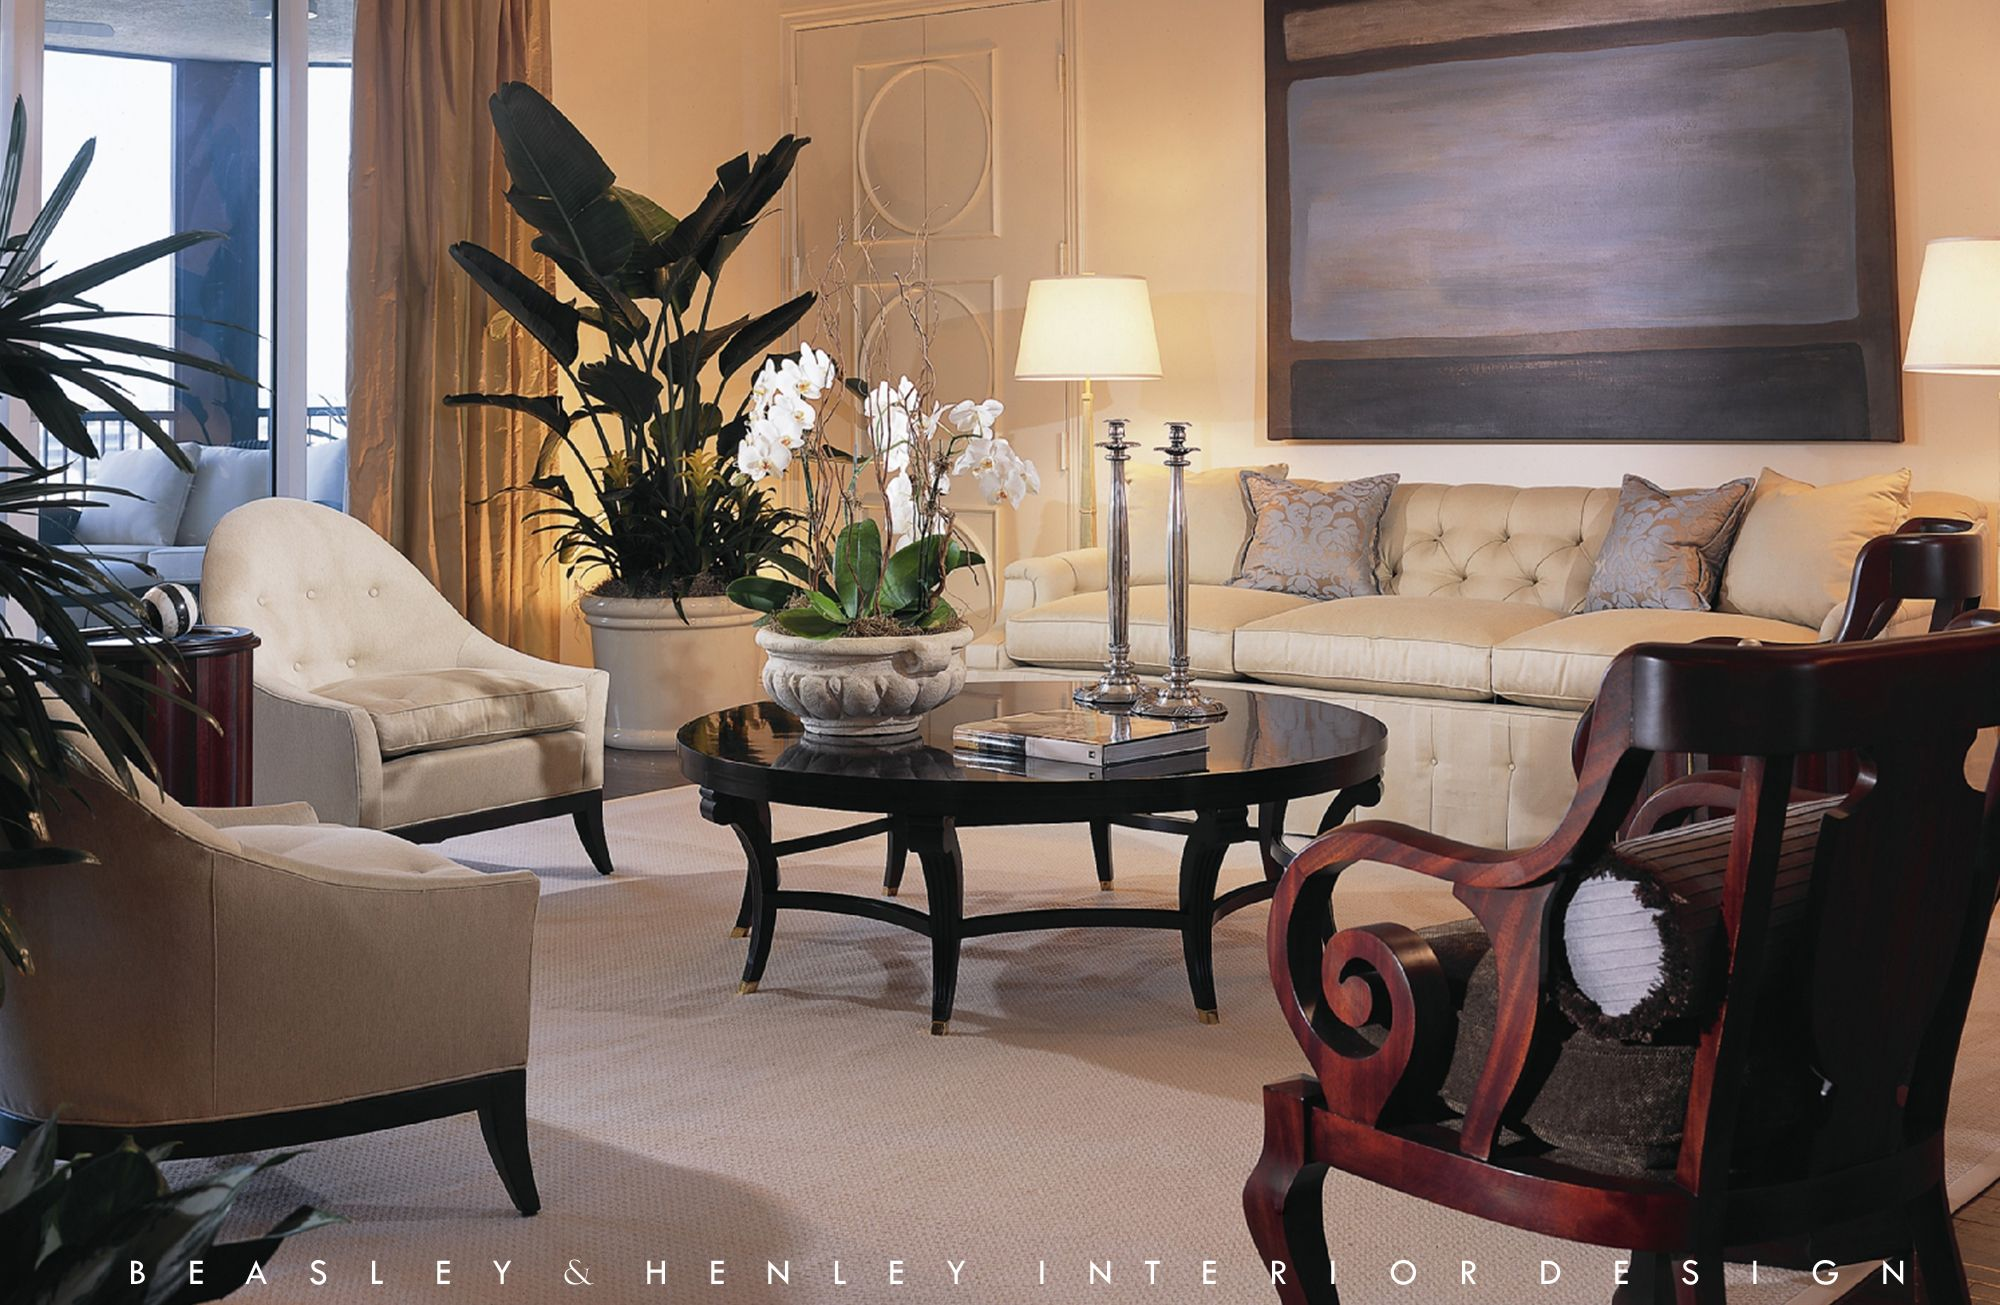 Traditional living room designed by Beasley & Henley Interior Design